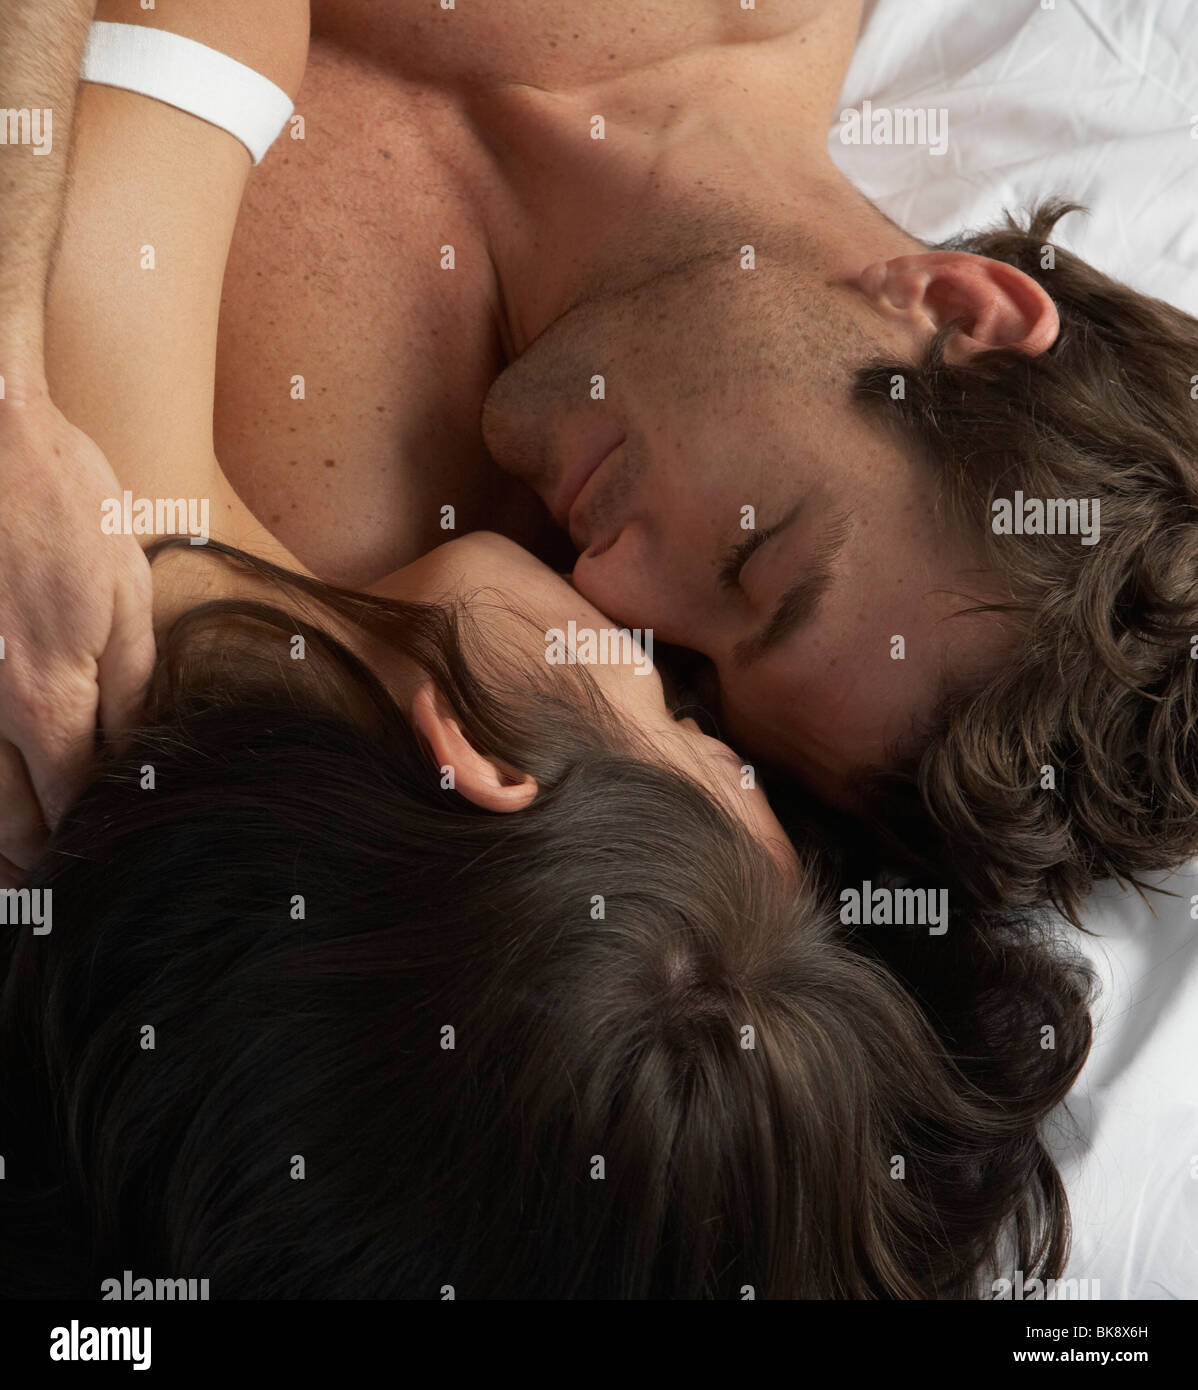 Tight shot of couple in bed embracing - Stock Image